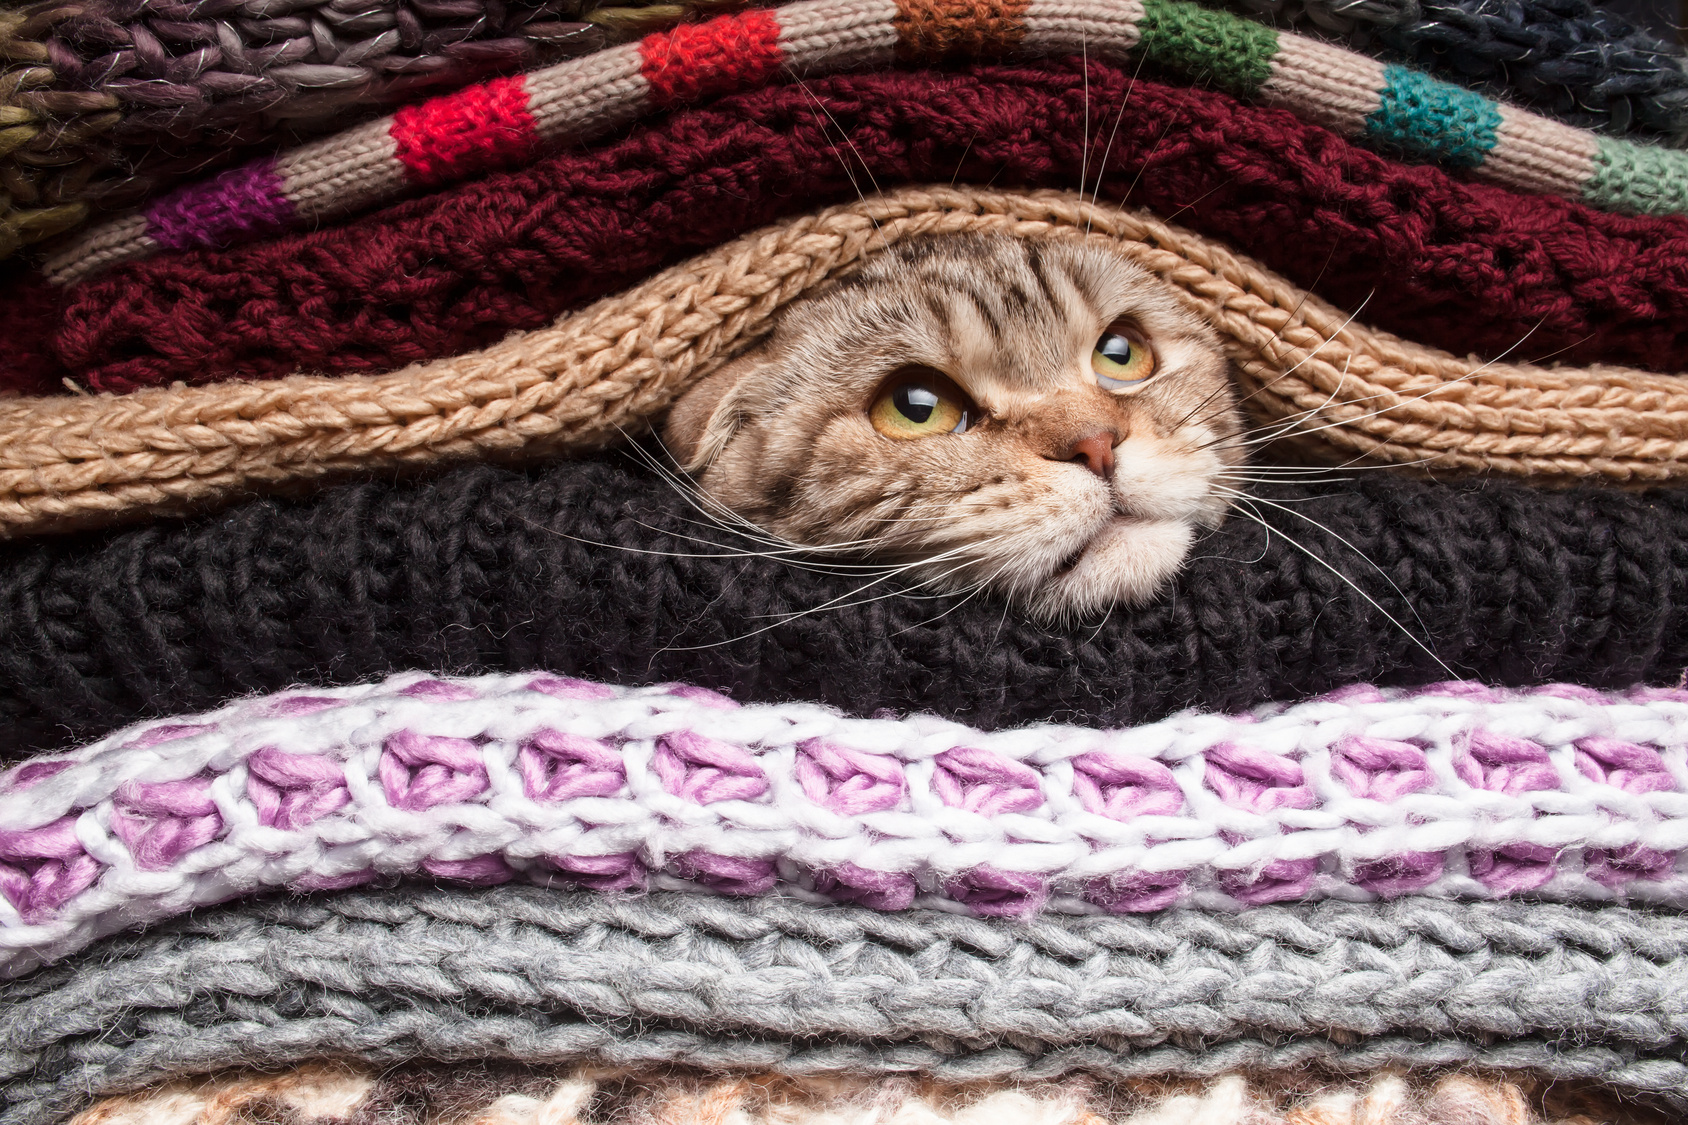 Cat in Pile of woolen clothes